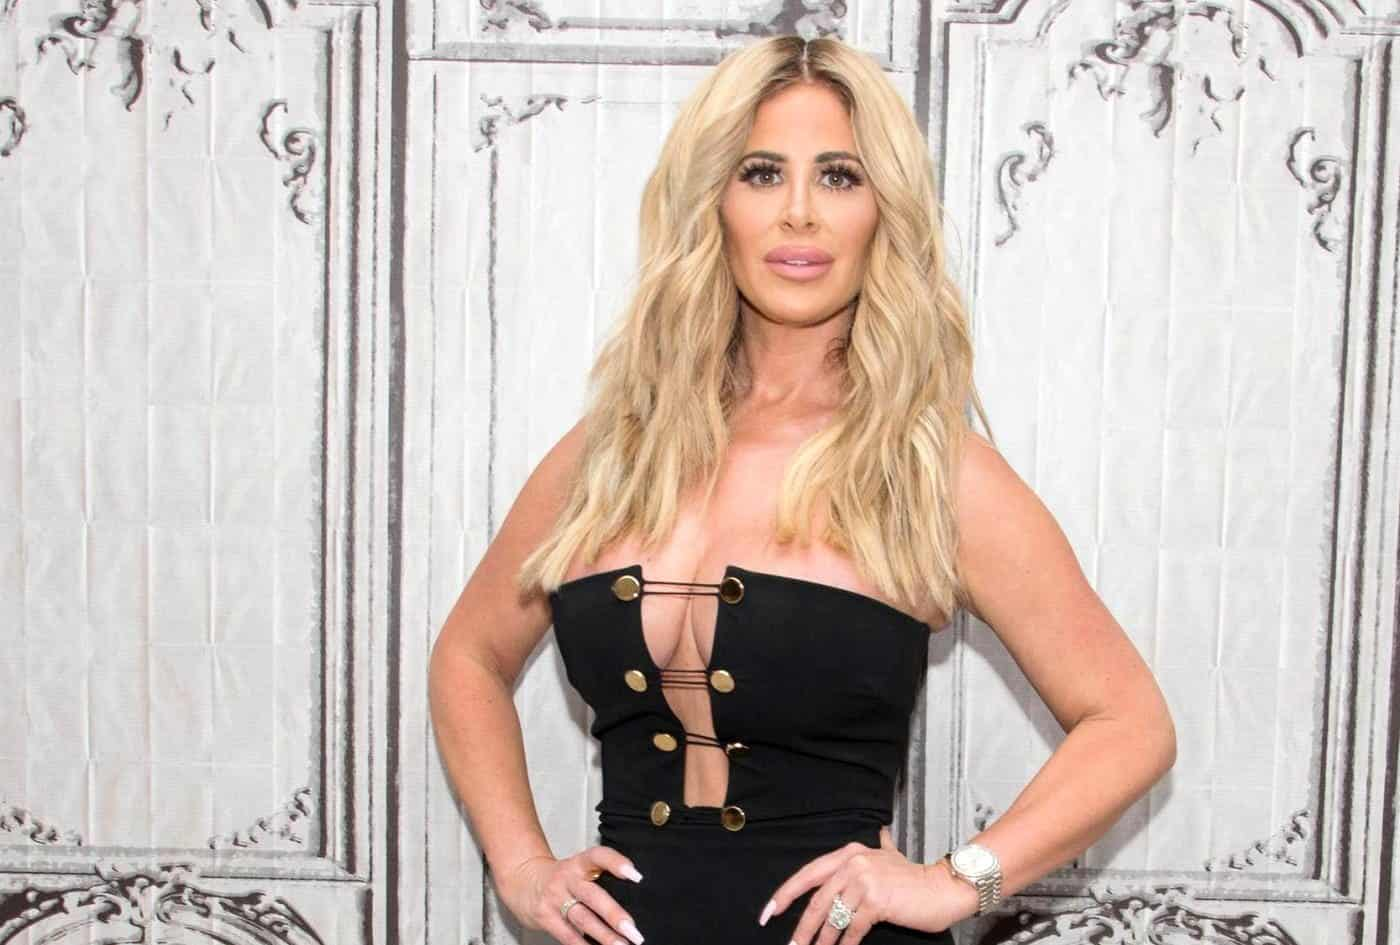 Don't Be Tardy's Kim Zolciak Credits Makeup for Why Her Face Looks 'So Different'